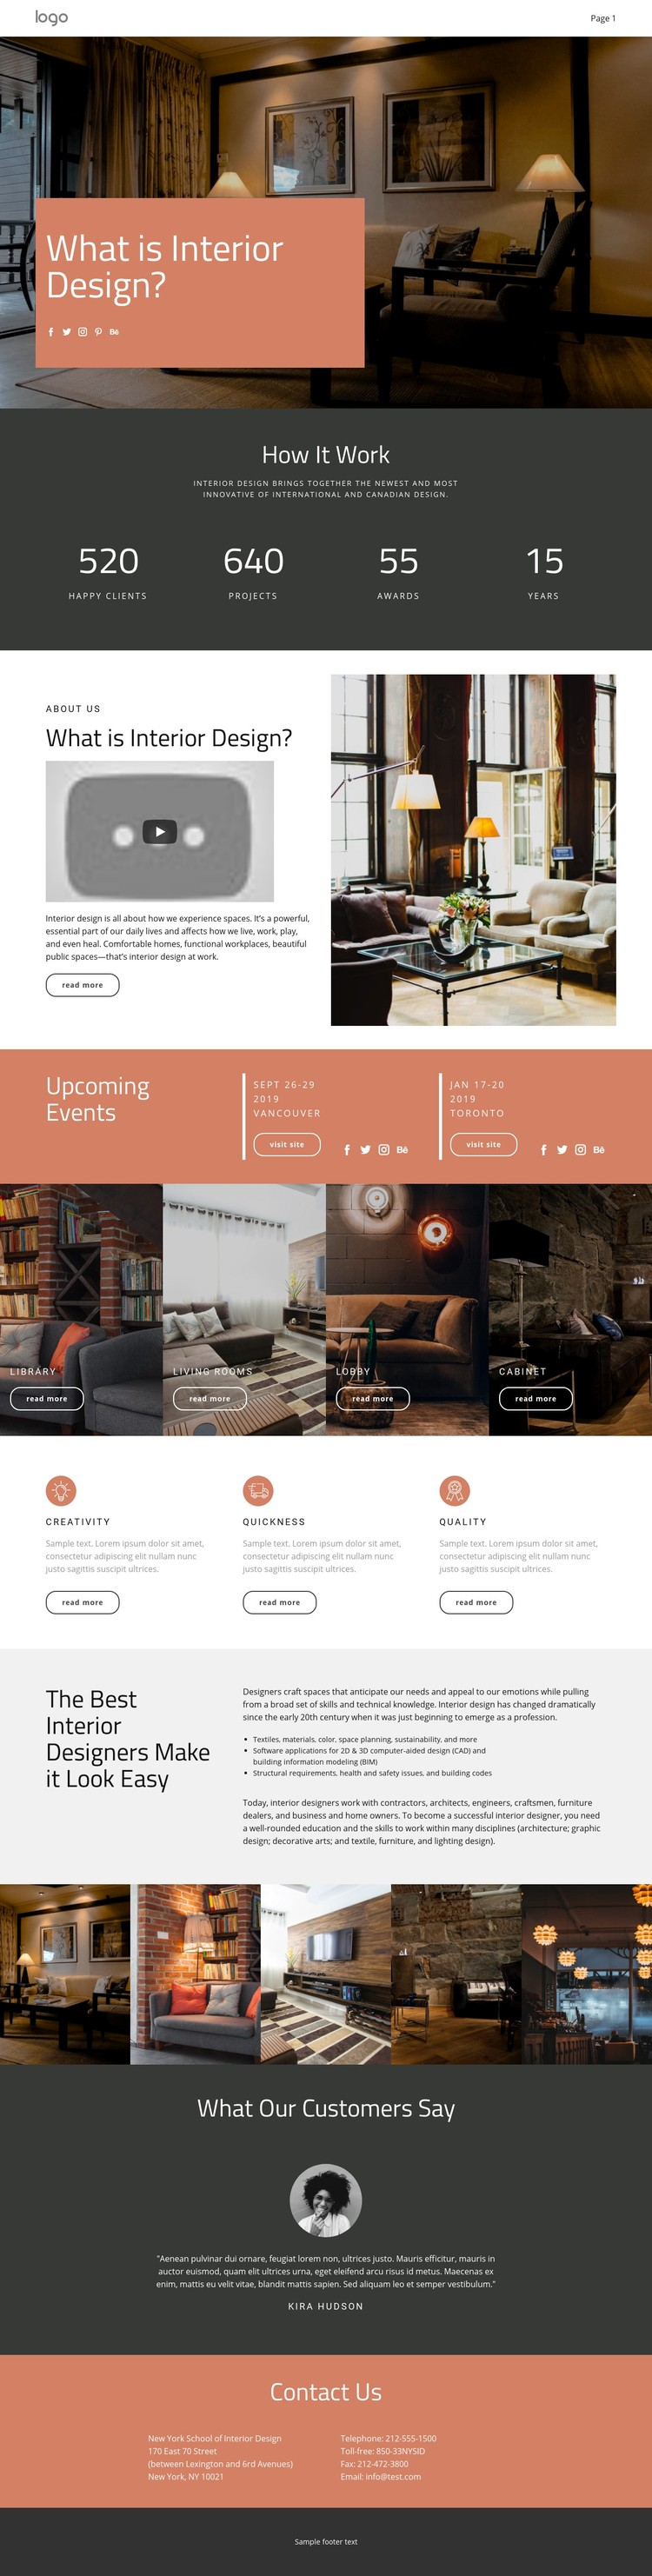 Design Of Houses And Apartments Website Creator